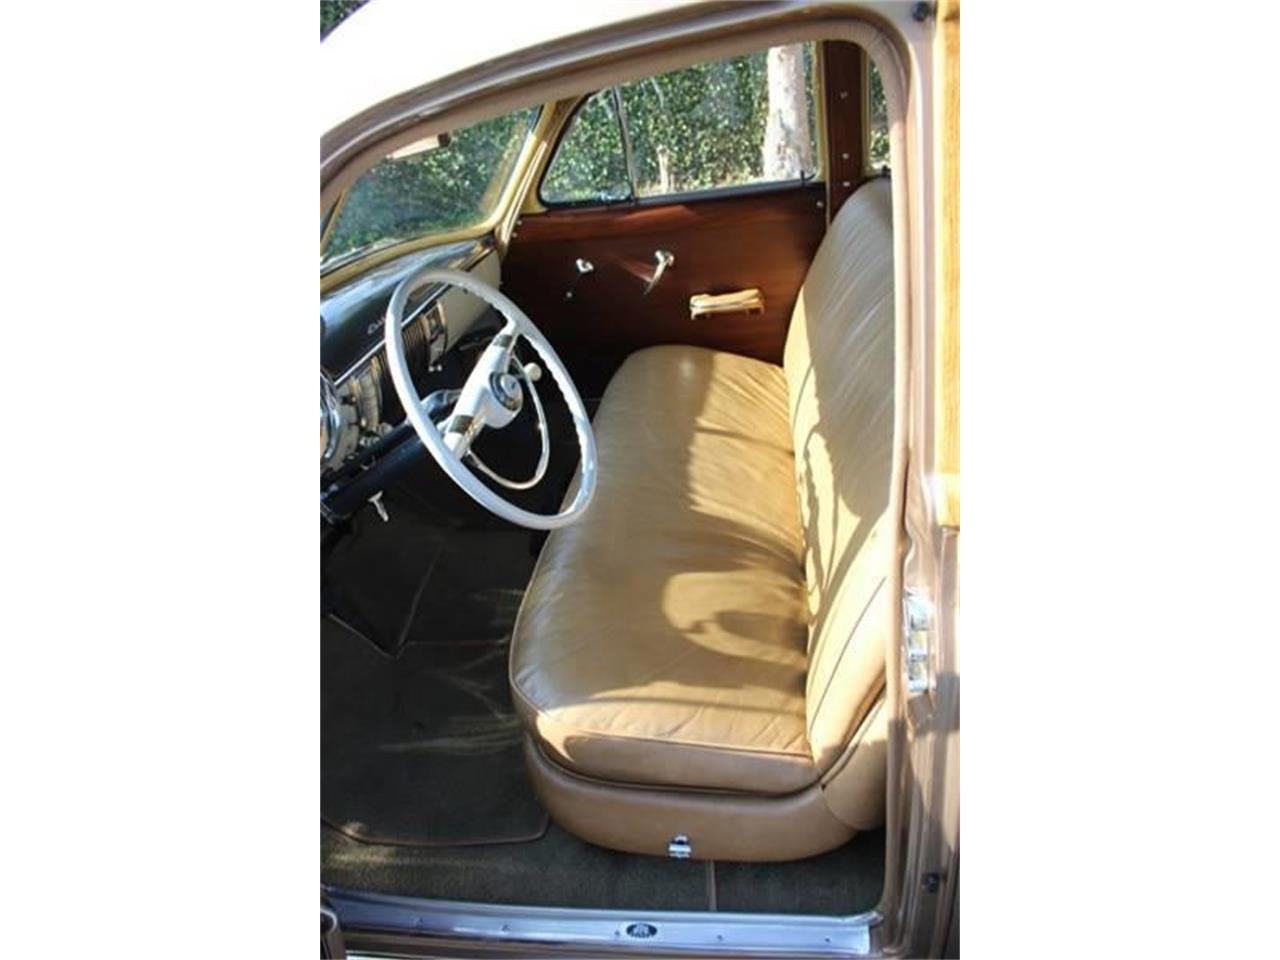 1950 Chevrolet Styleline Deluxe for sale in La Verne, CA – photo 27